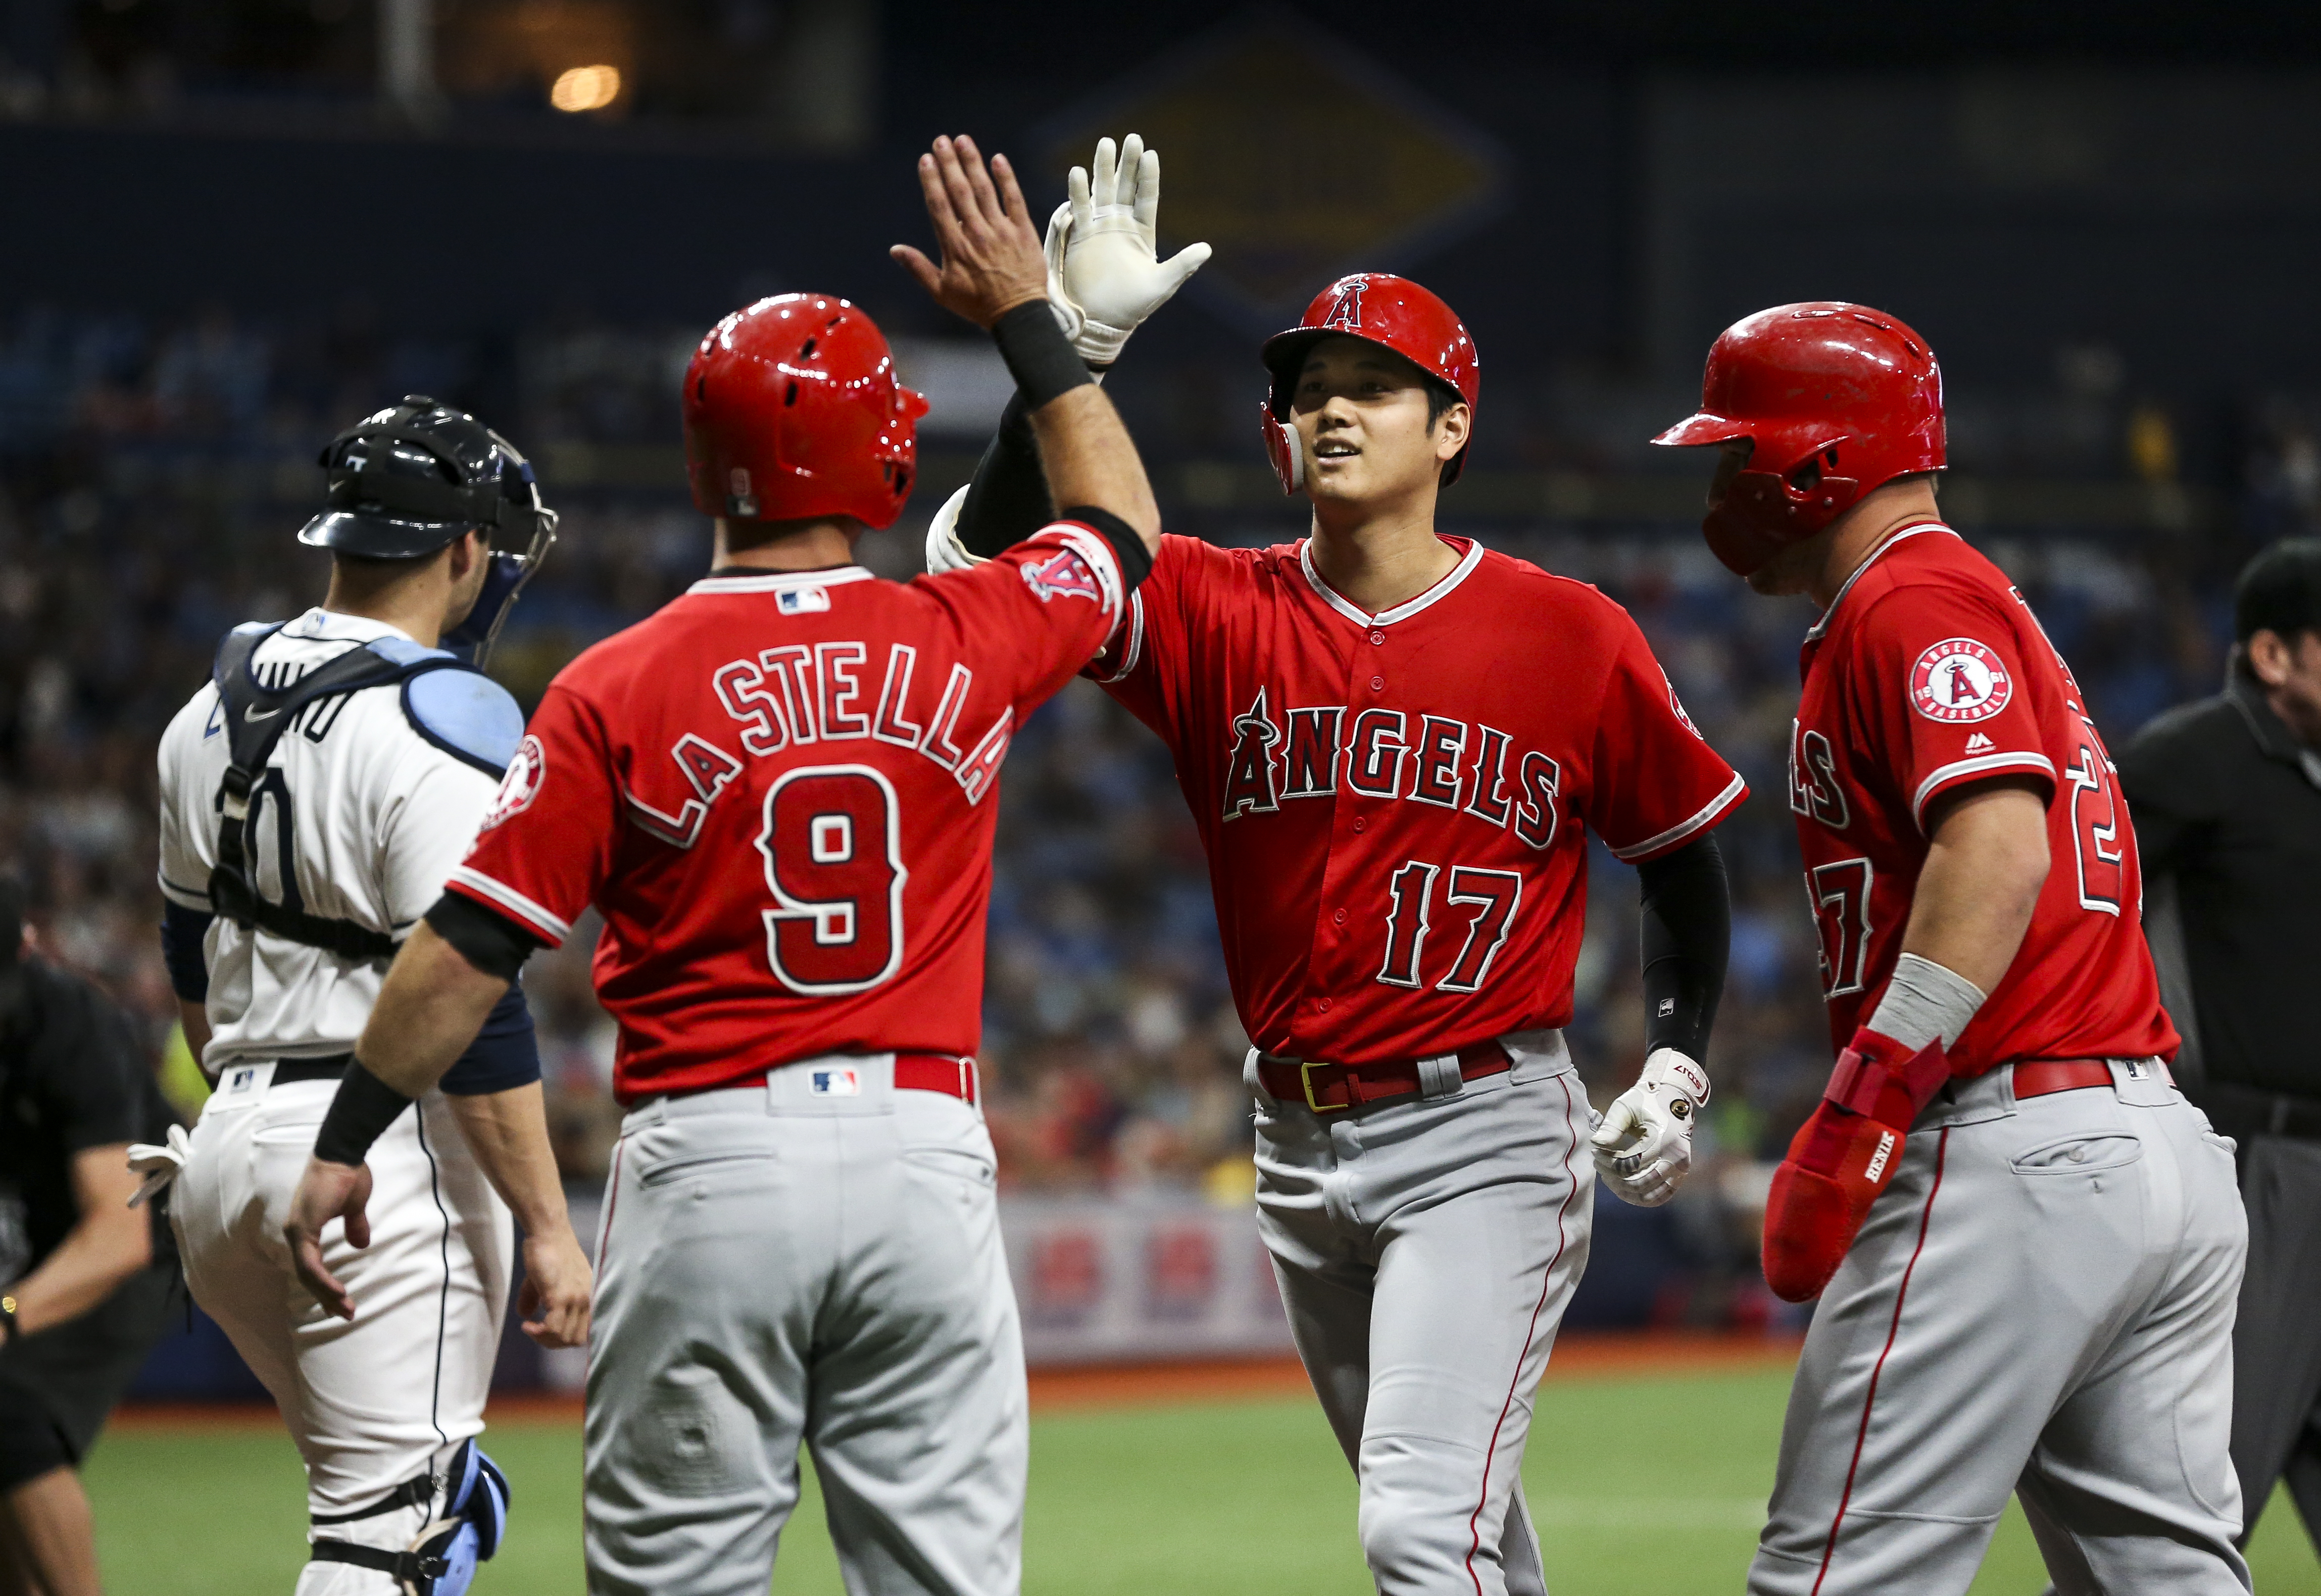 timeless design 237fd f2a01 Angels' Shohei Ohtani hits for the cycle against Rays